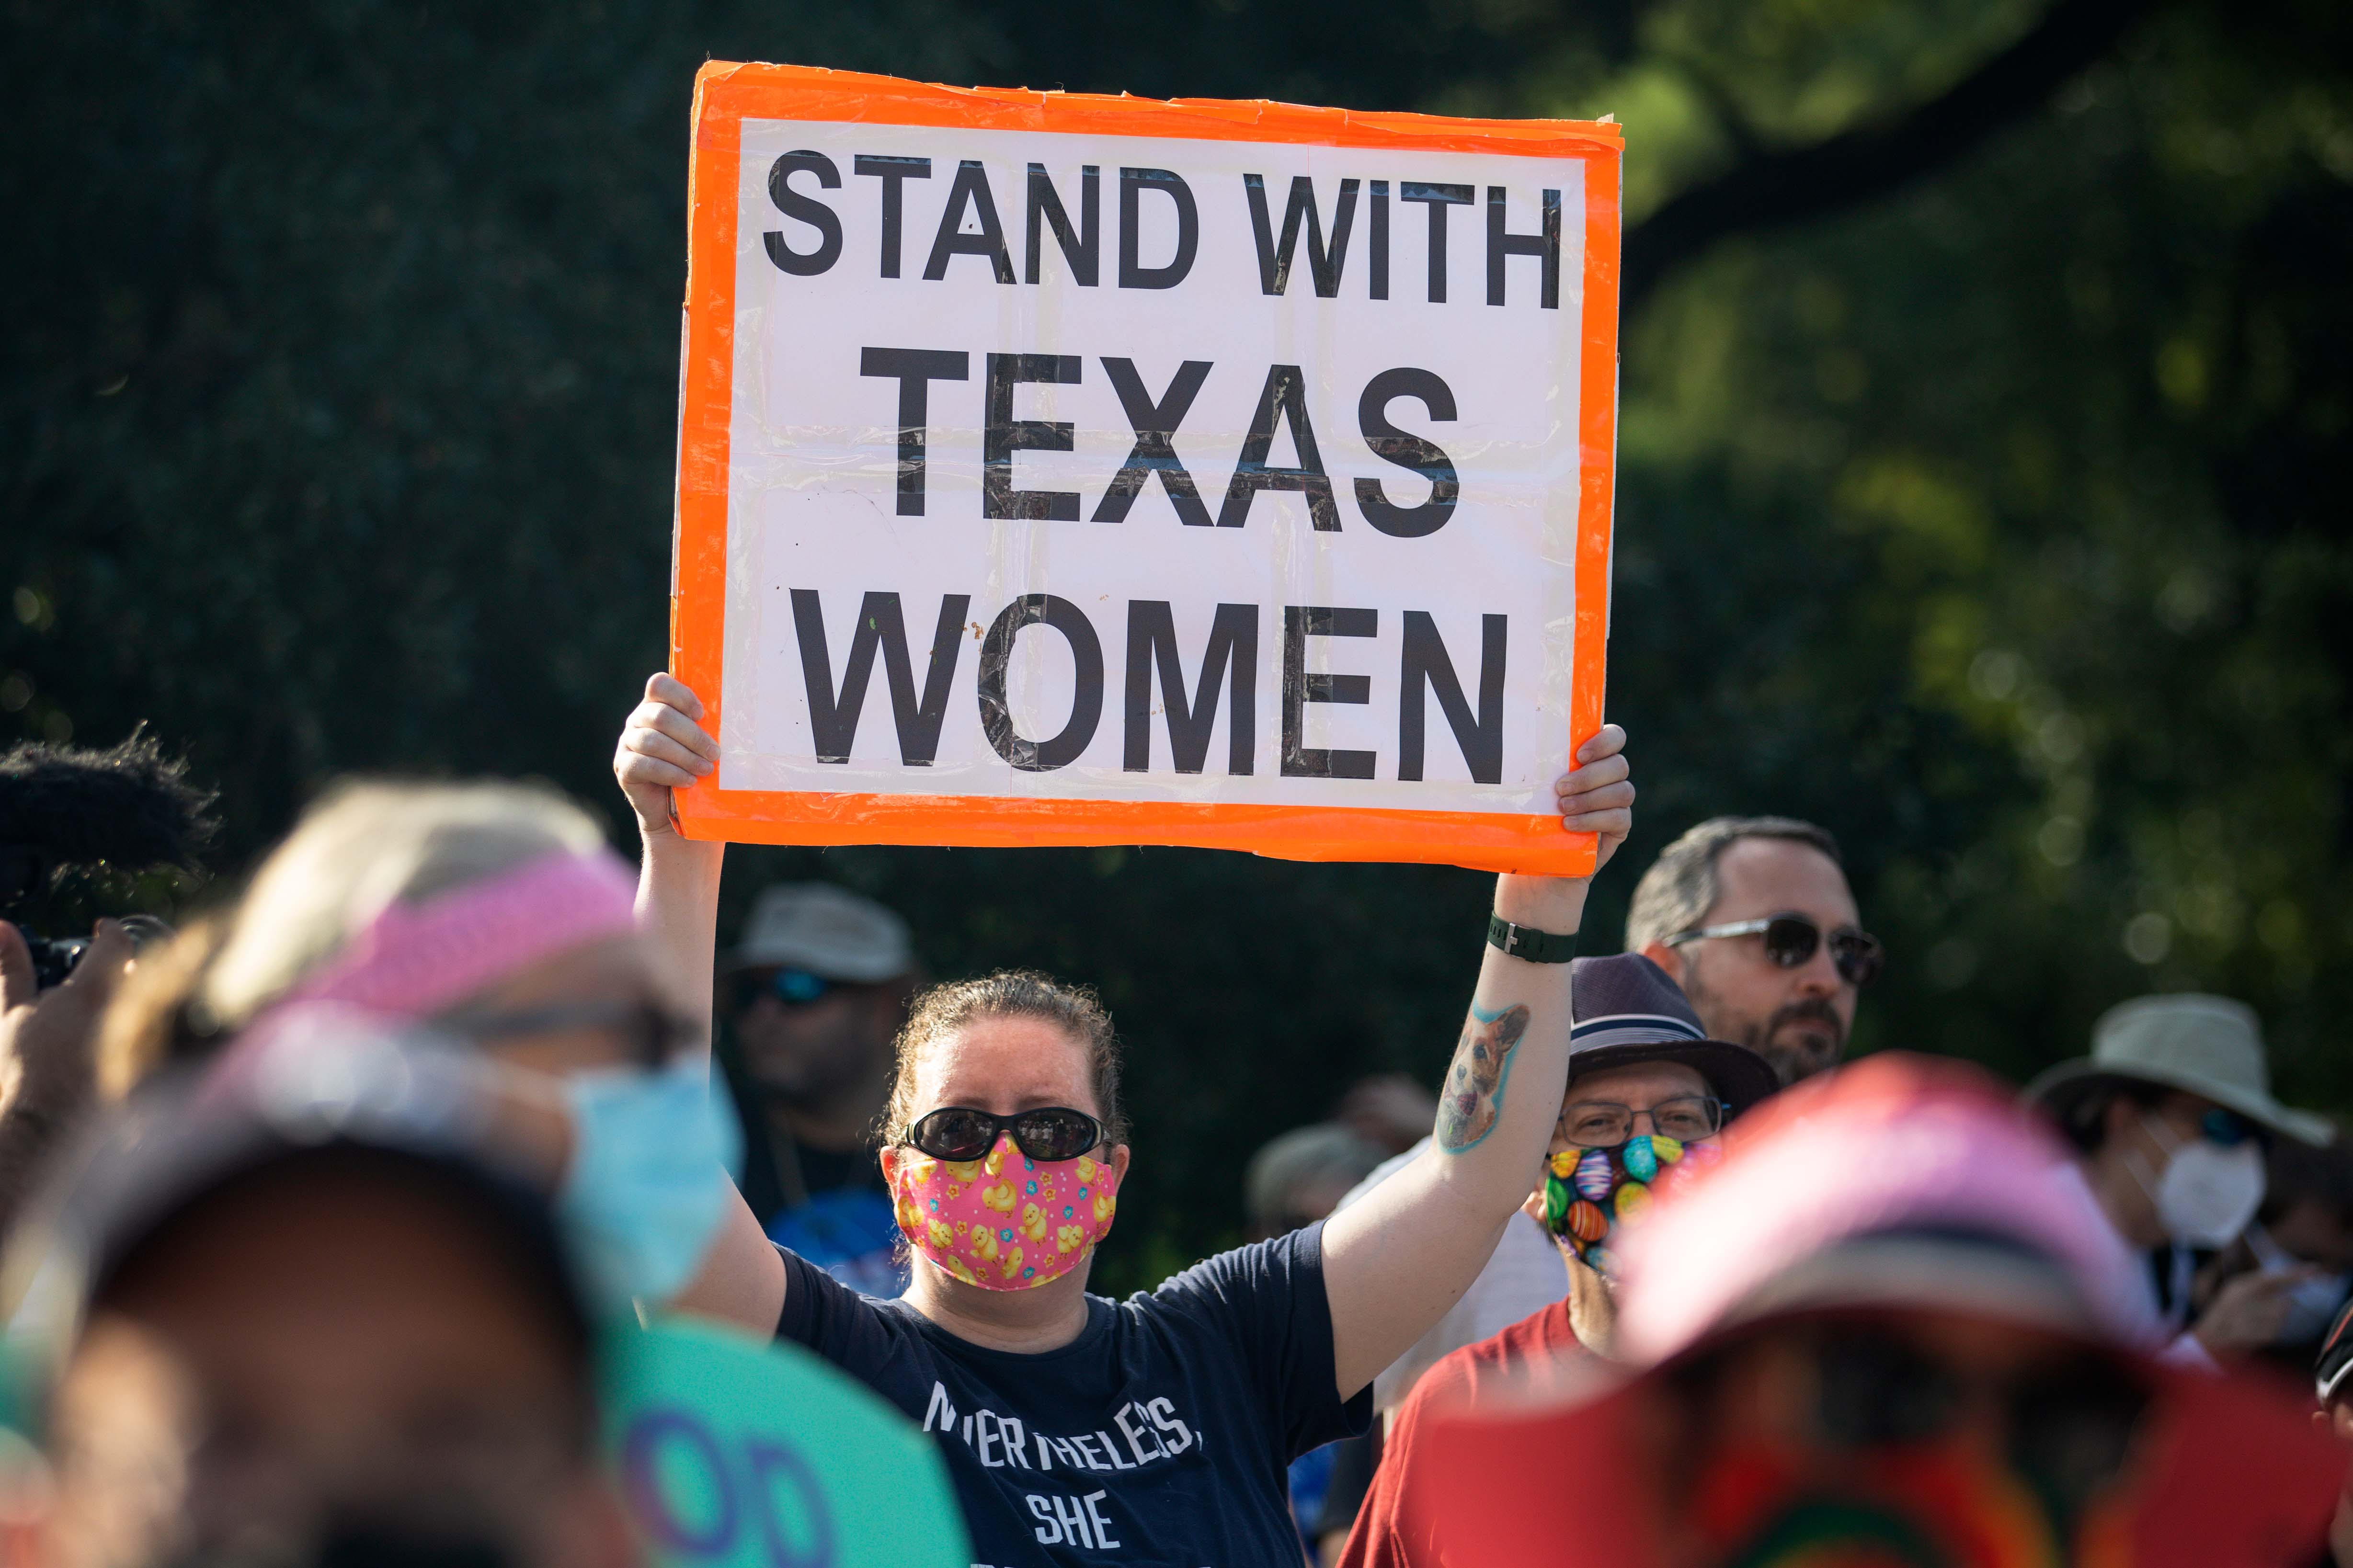 Texas abortion law sign